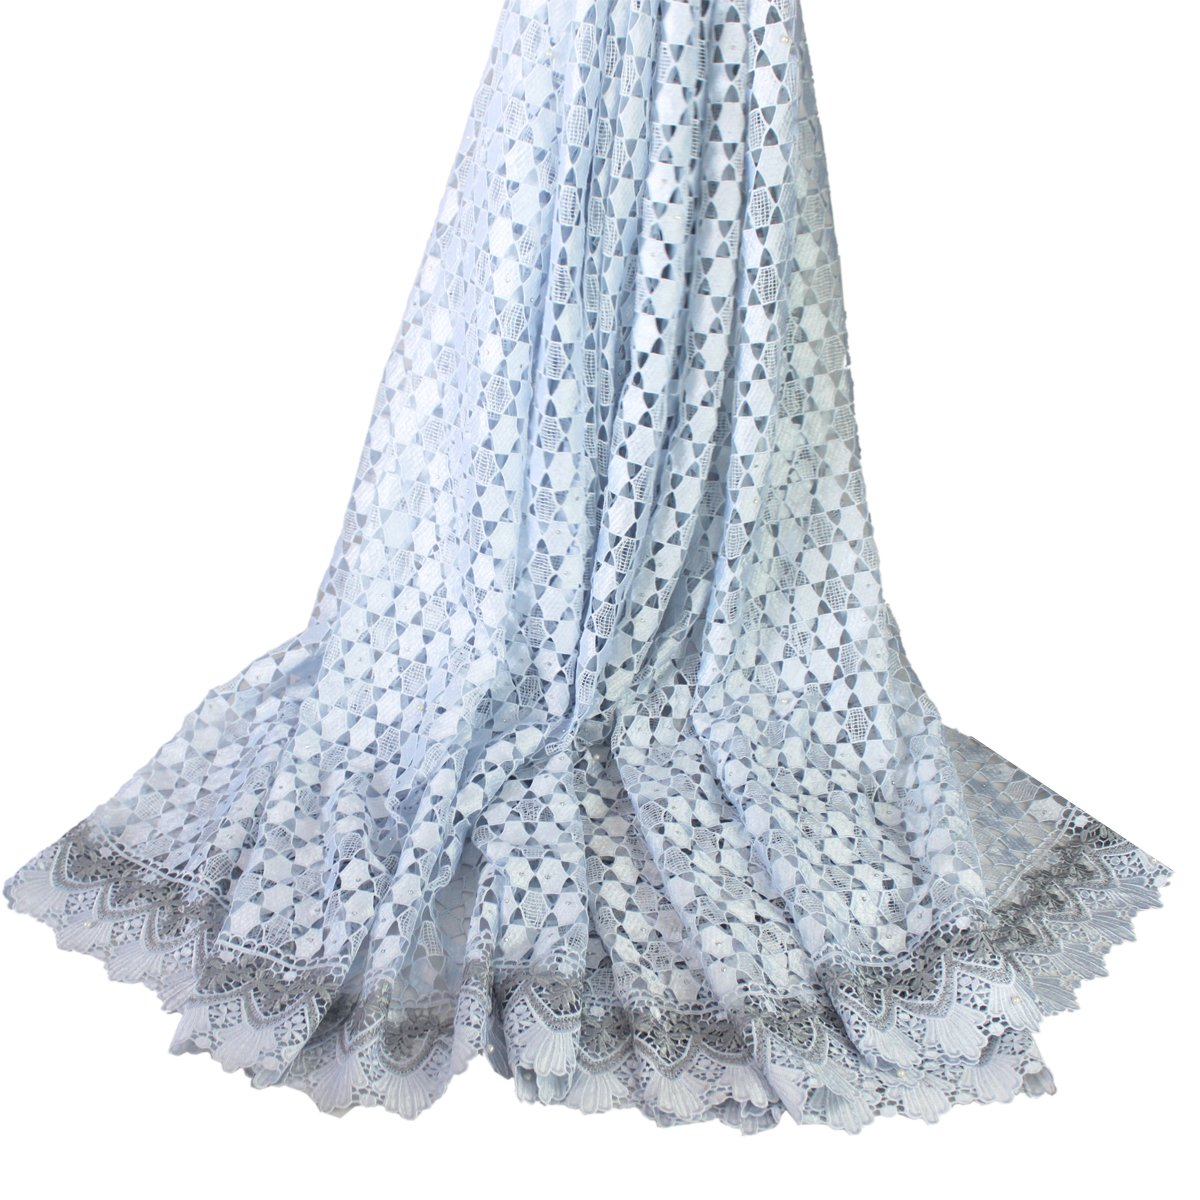 Silver Aisunne 5 Yards African Lace Fabrics Classics Nigerian French Lace Fabric with Embroidered For Wedding Party Dresses